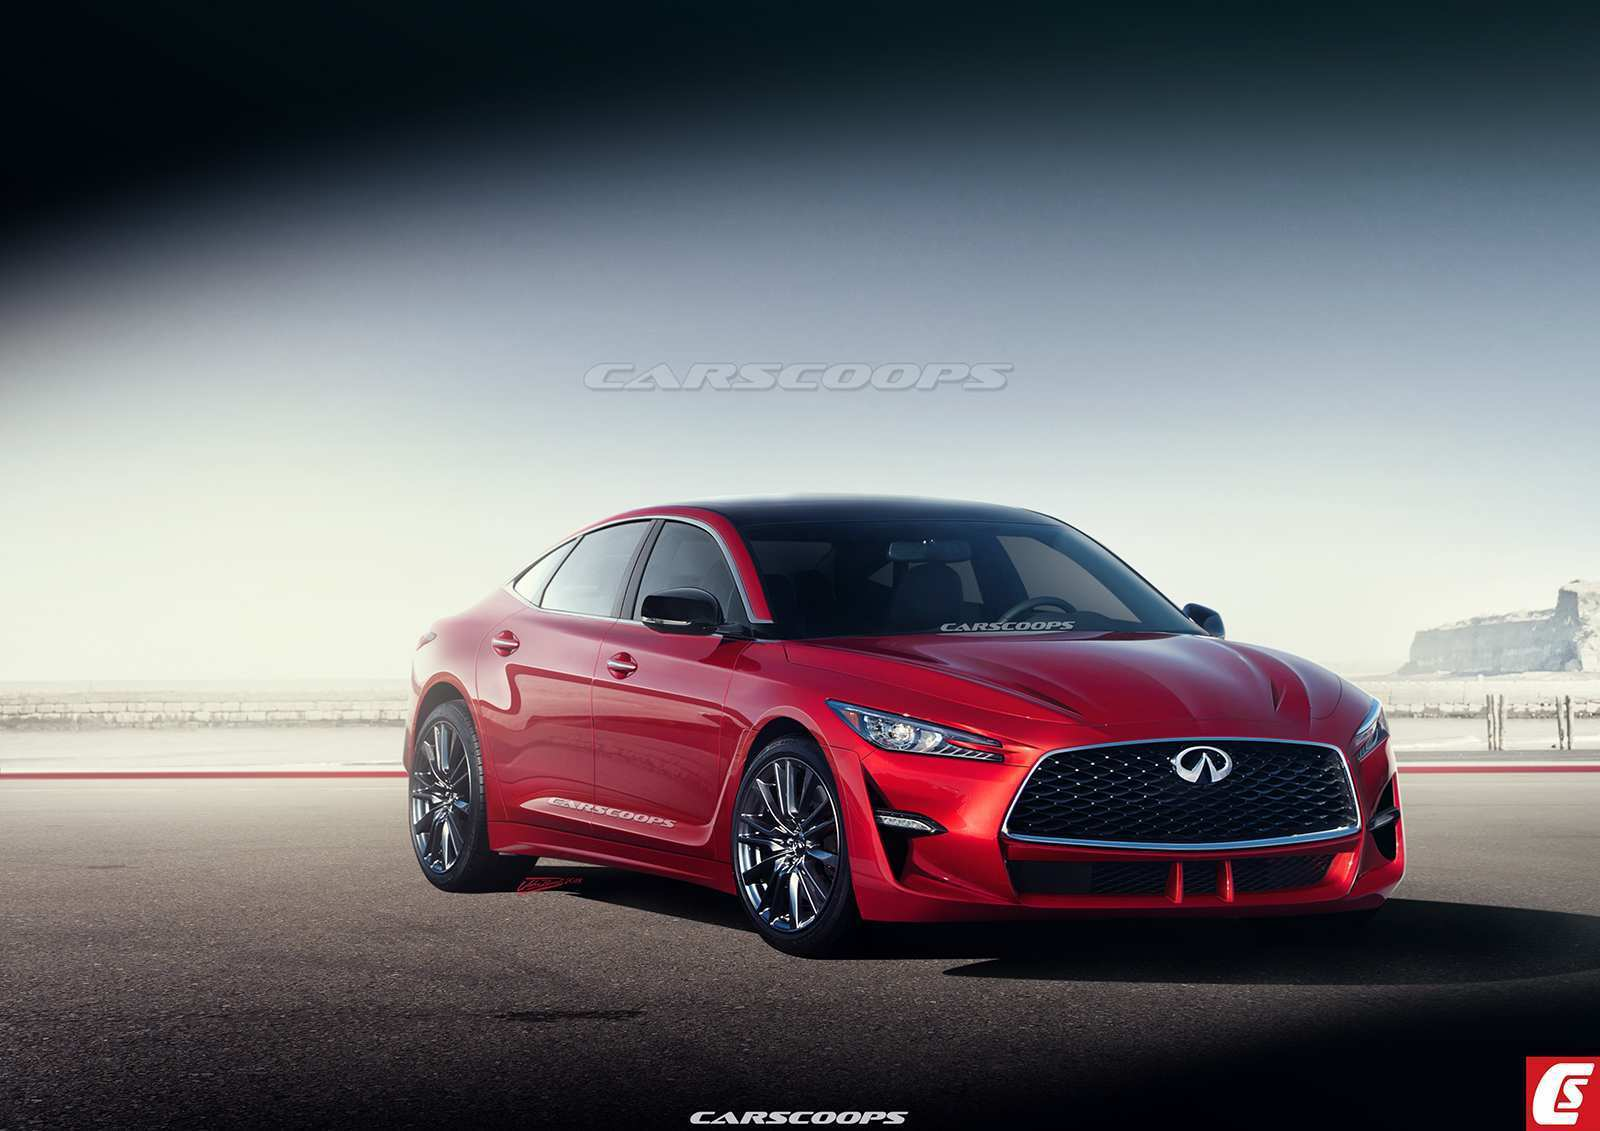 95 New 2020 Infiniti Cars Prices with 2020 Infiniti Cars